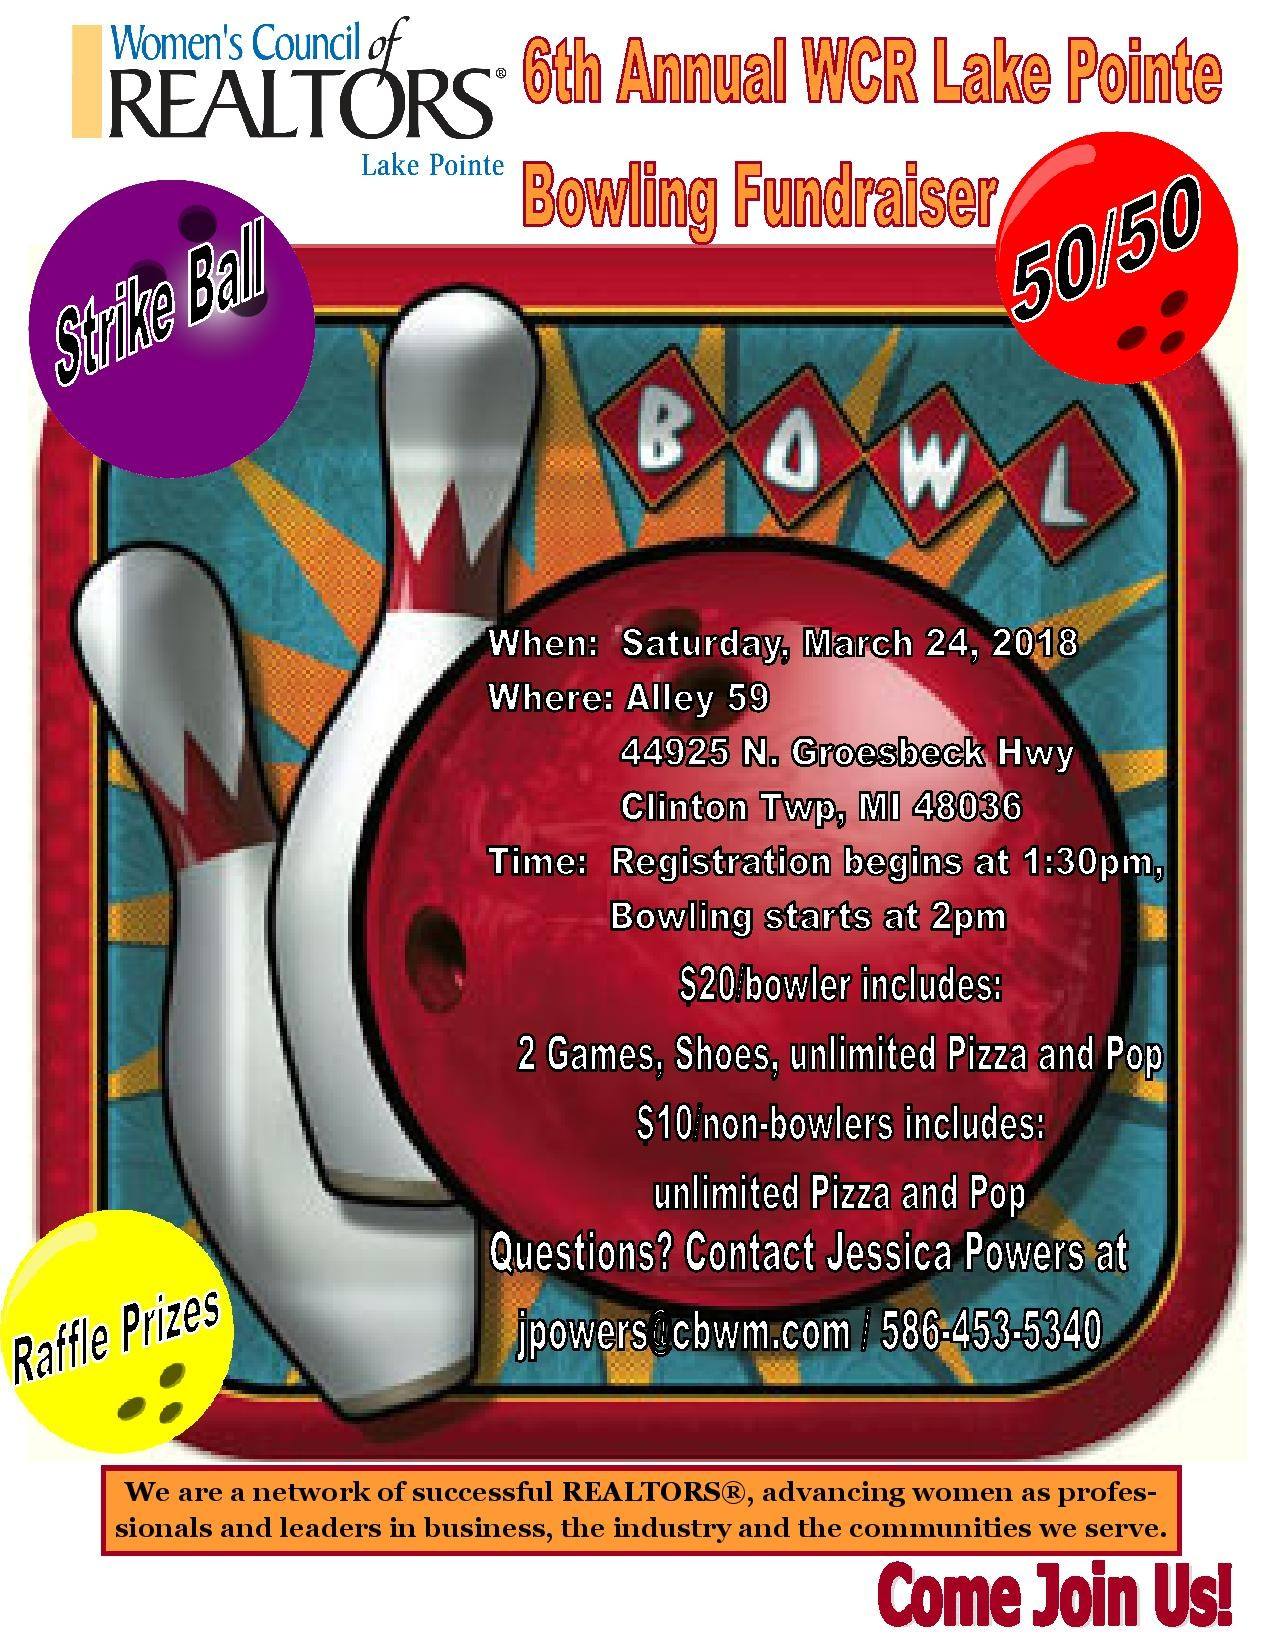 http://www.wcr.org/media/ef737d3b-f66a-4877-aee7-3fcc4167f7d42018%20Bowling%20Fundraiser%20Flyer-page-002.jpg